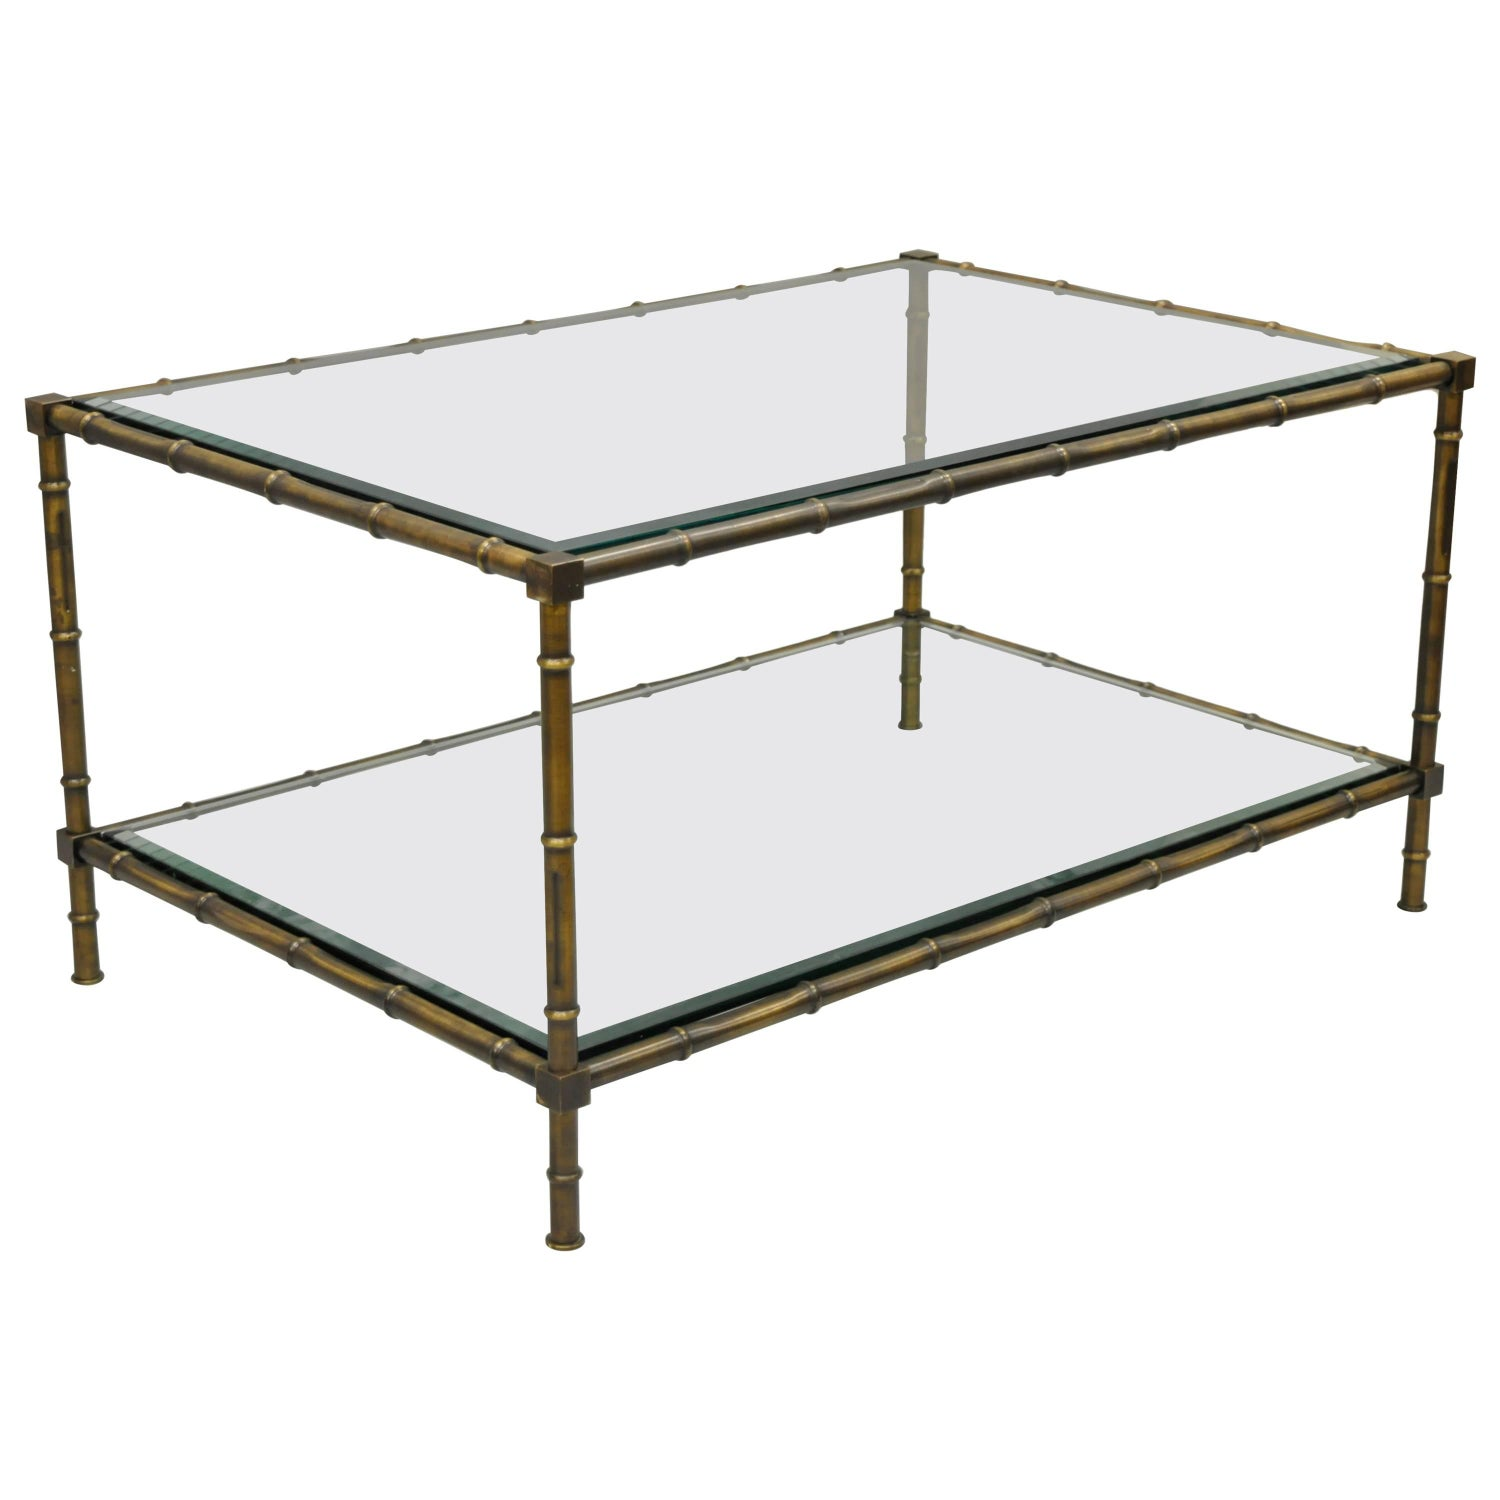 Brass and Glass Faux Bamboo Two Tier Coffee Table French Hollywood